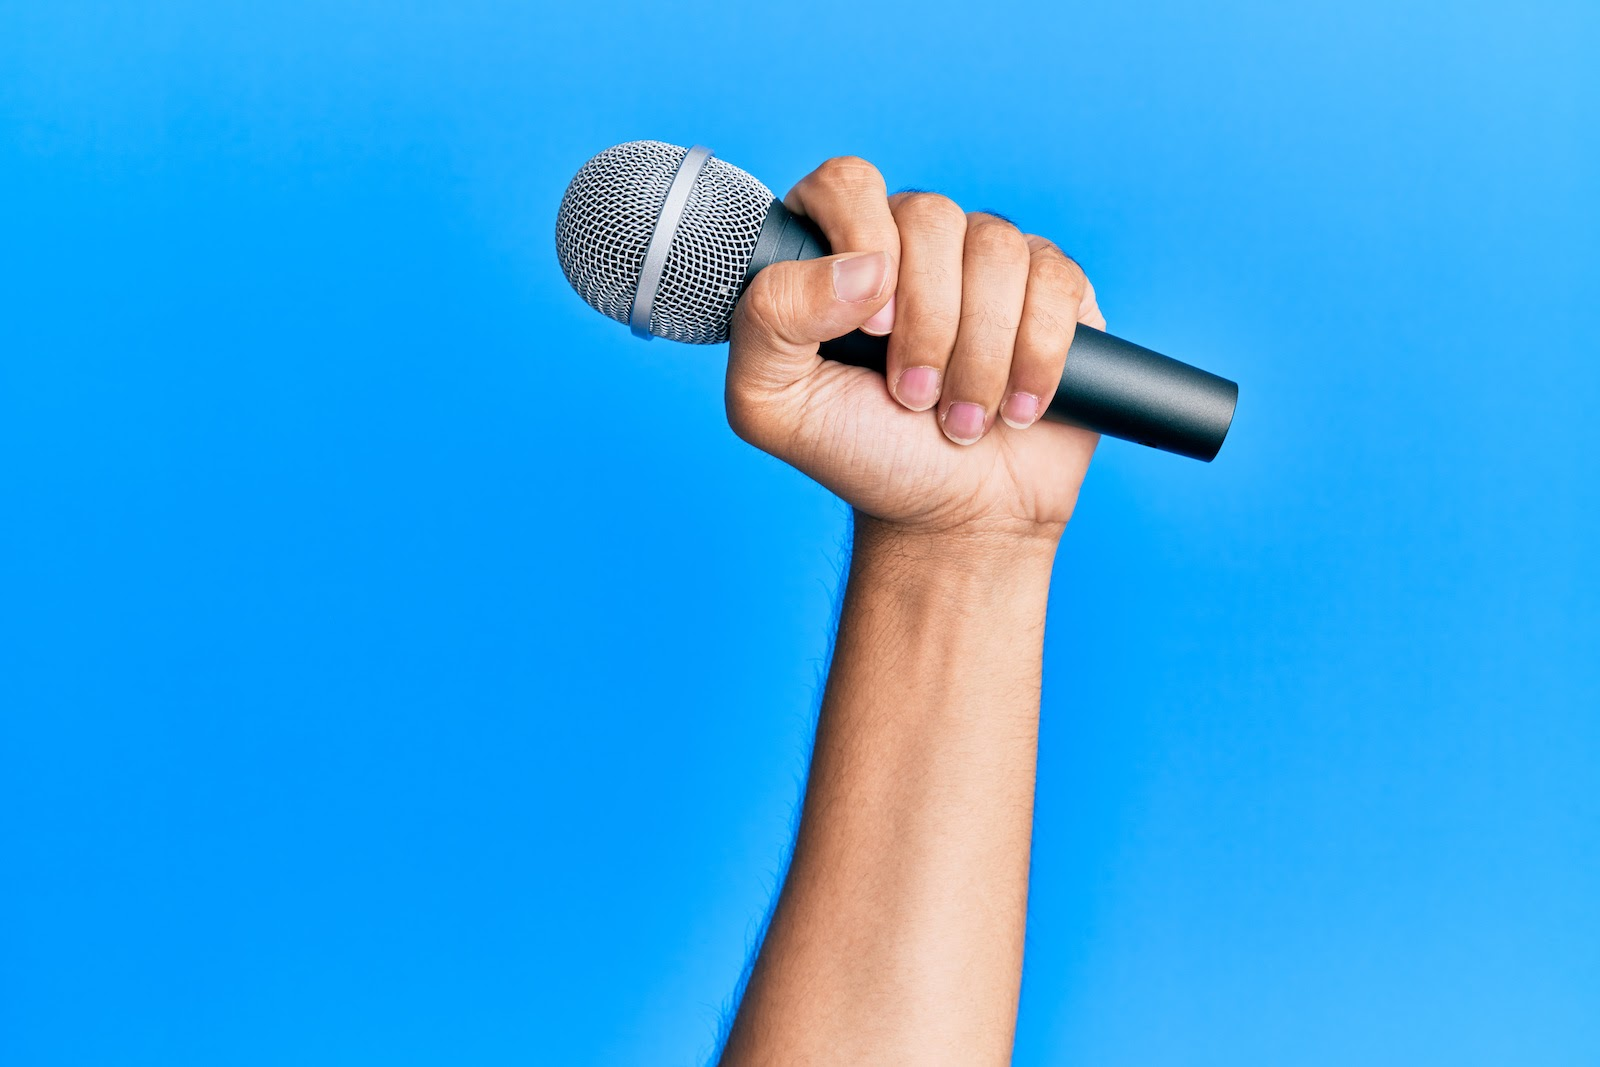 How to host a webinar: A person holds a microphone to present at a webinar